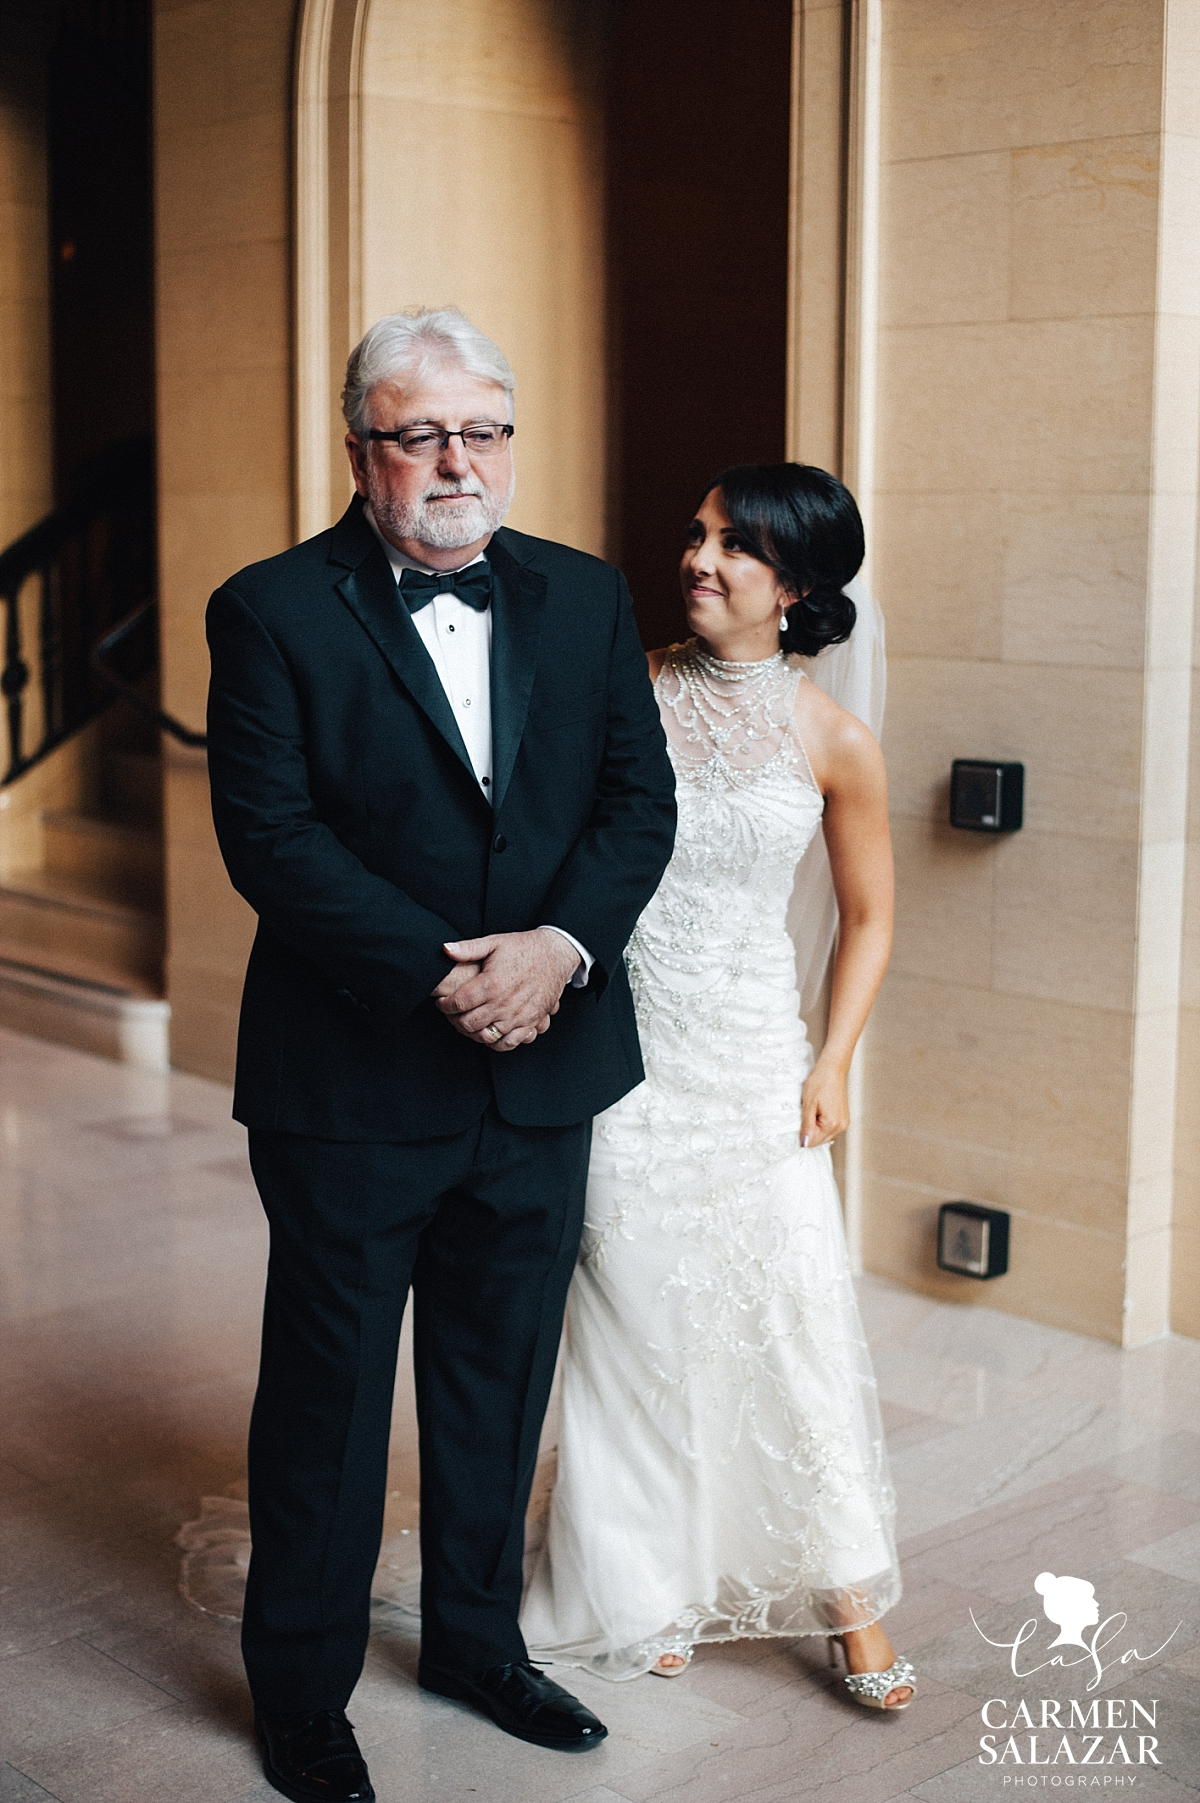 Father of the bride first look in Citizen lobby - Carmen Salazar